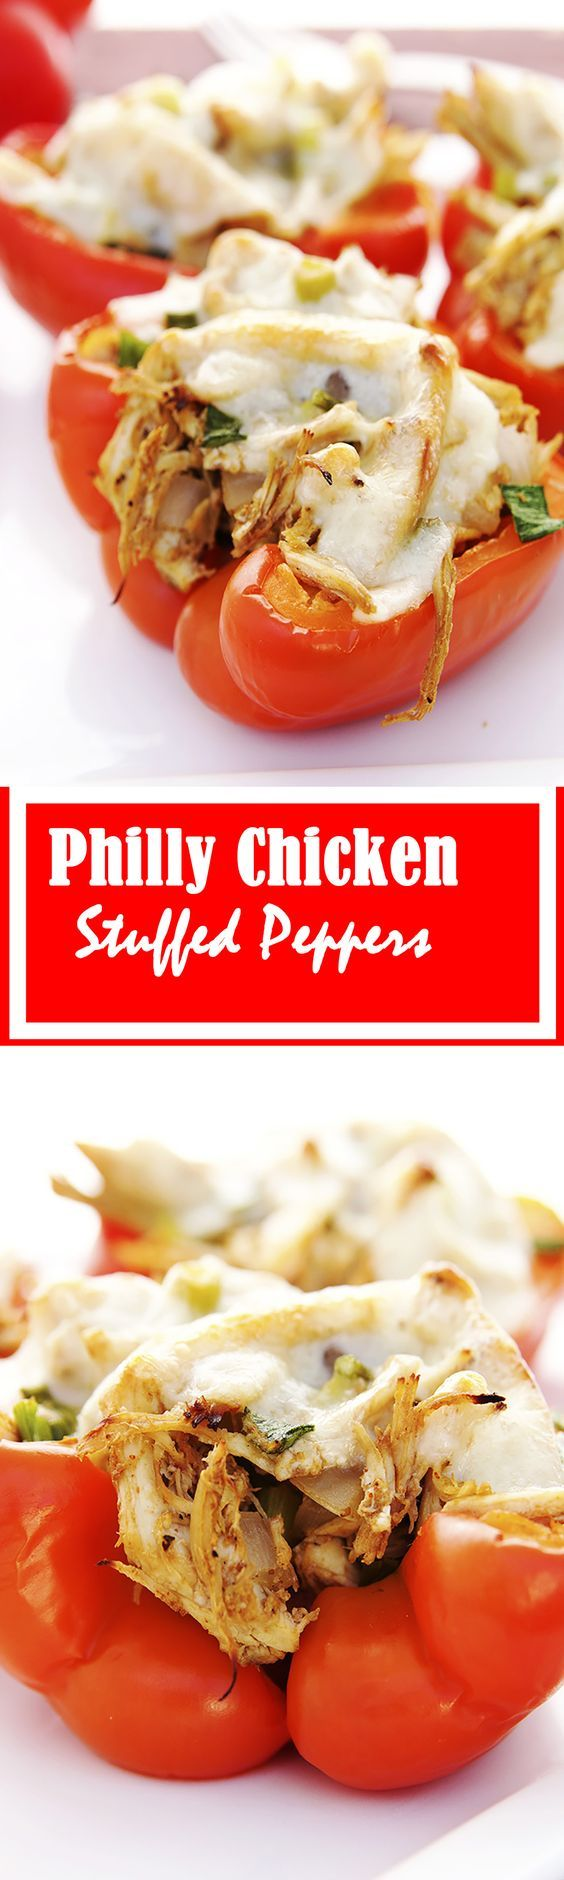 Philly Chicken Stuffed Peppers are loaded with Philly cheese flavor, low in carbs, and taste amazing.